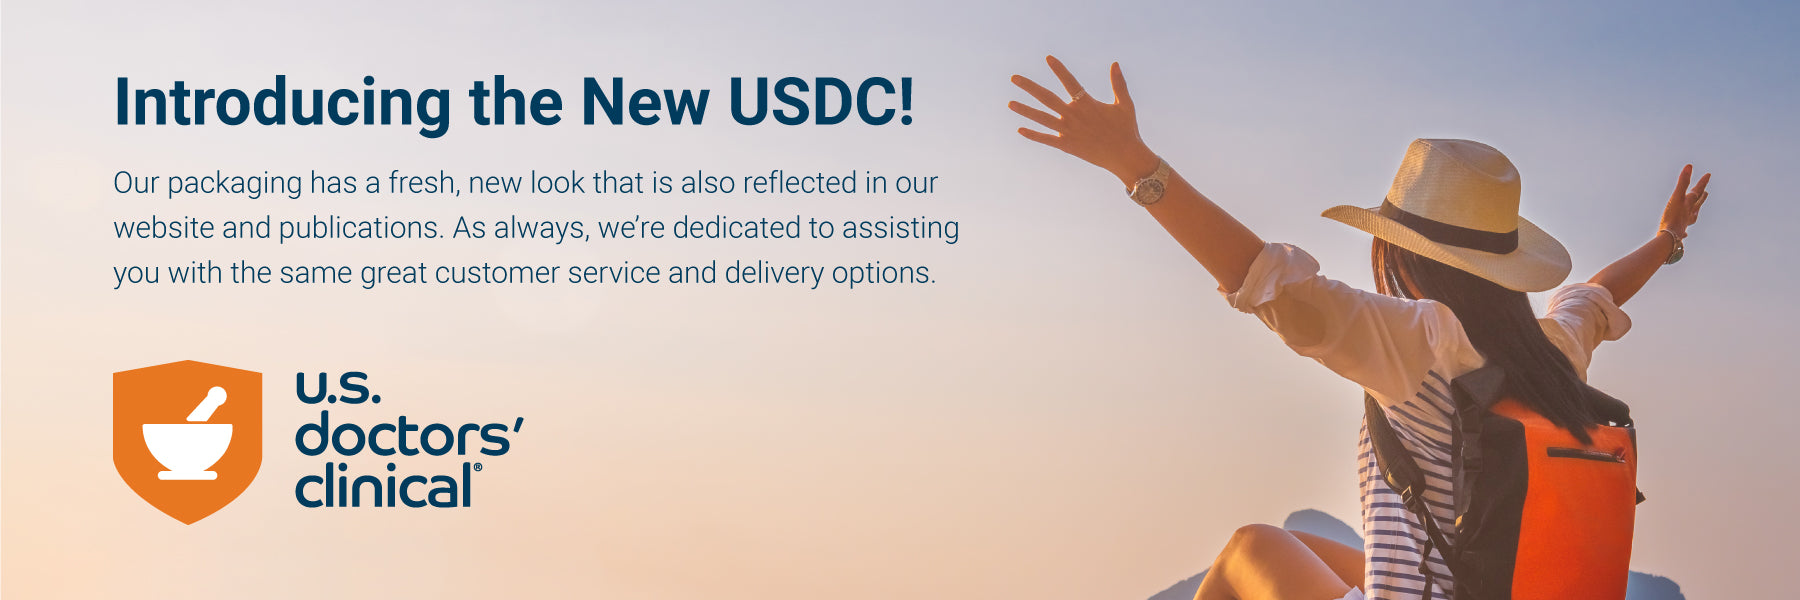 Introducing The New USDC